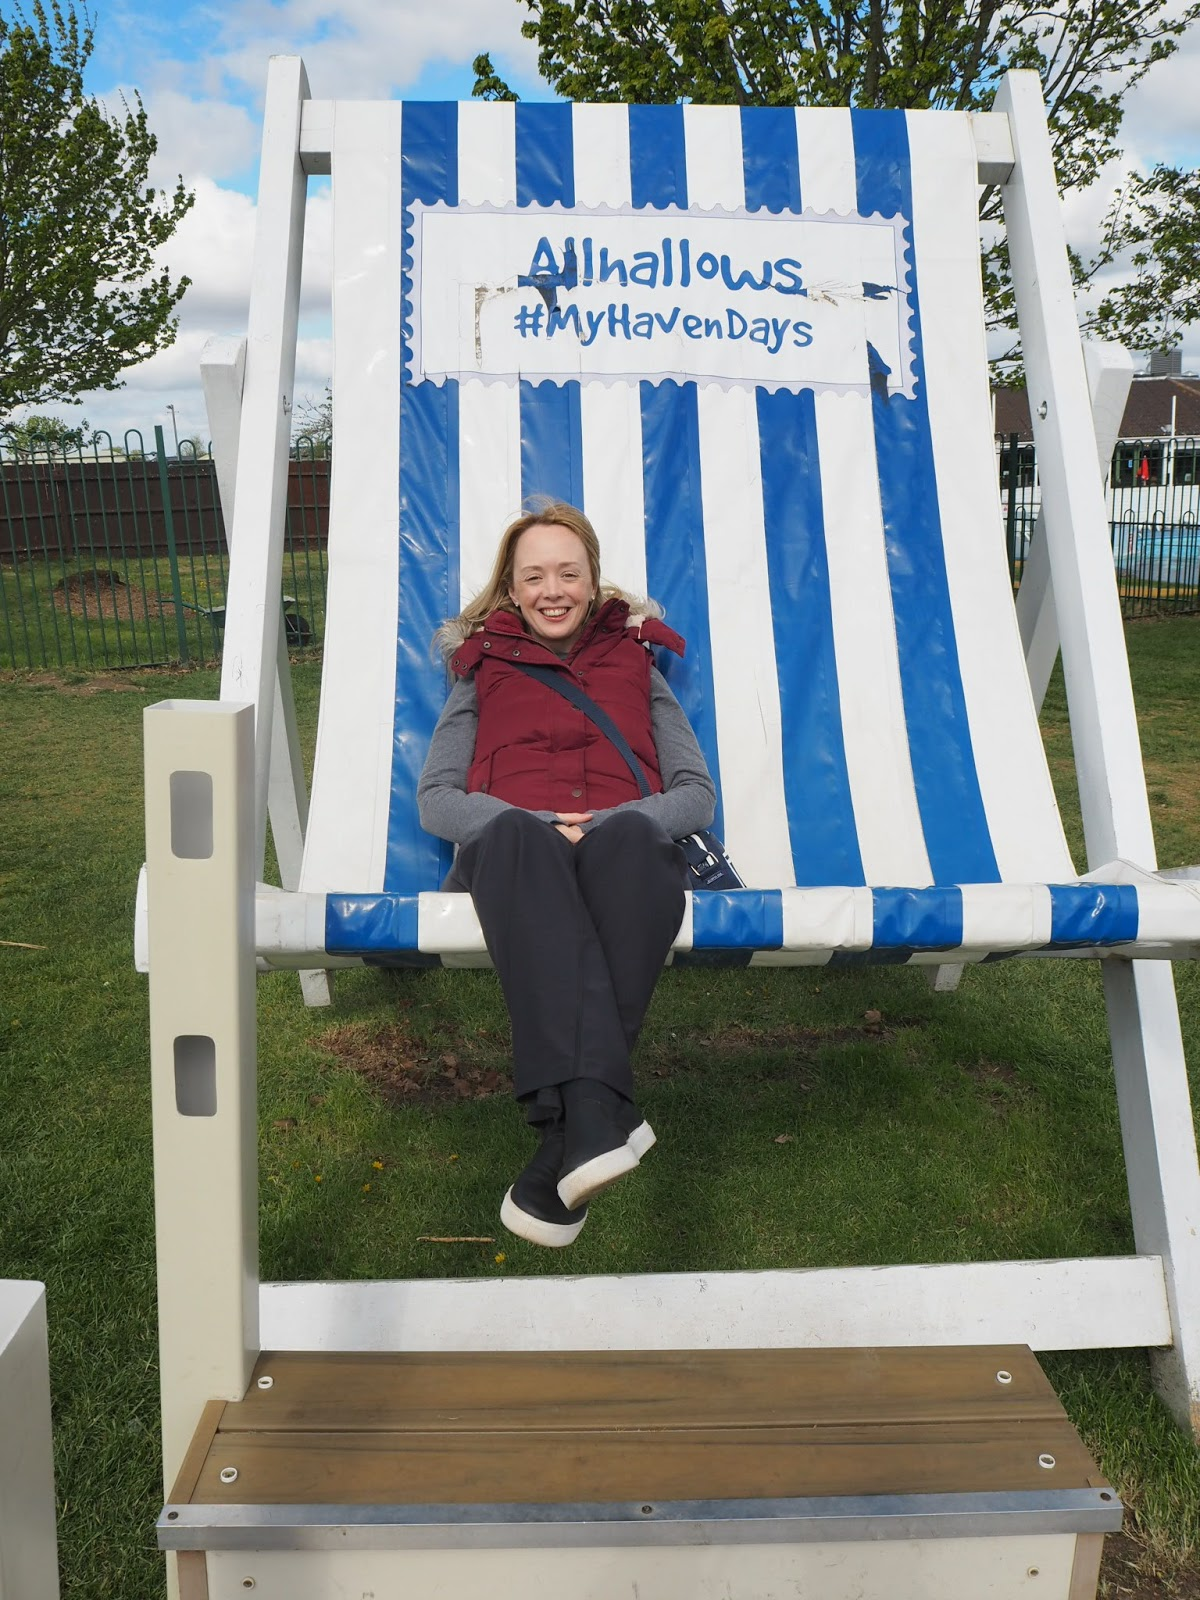 Haven Allhallows deckchair the best version of kelly